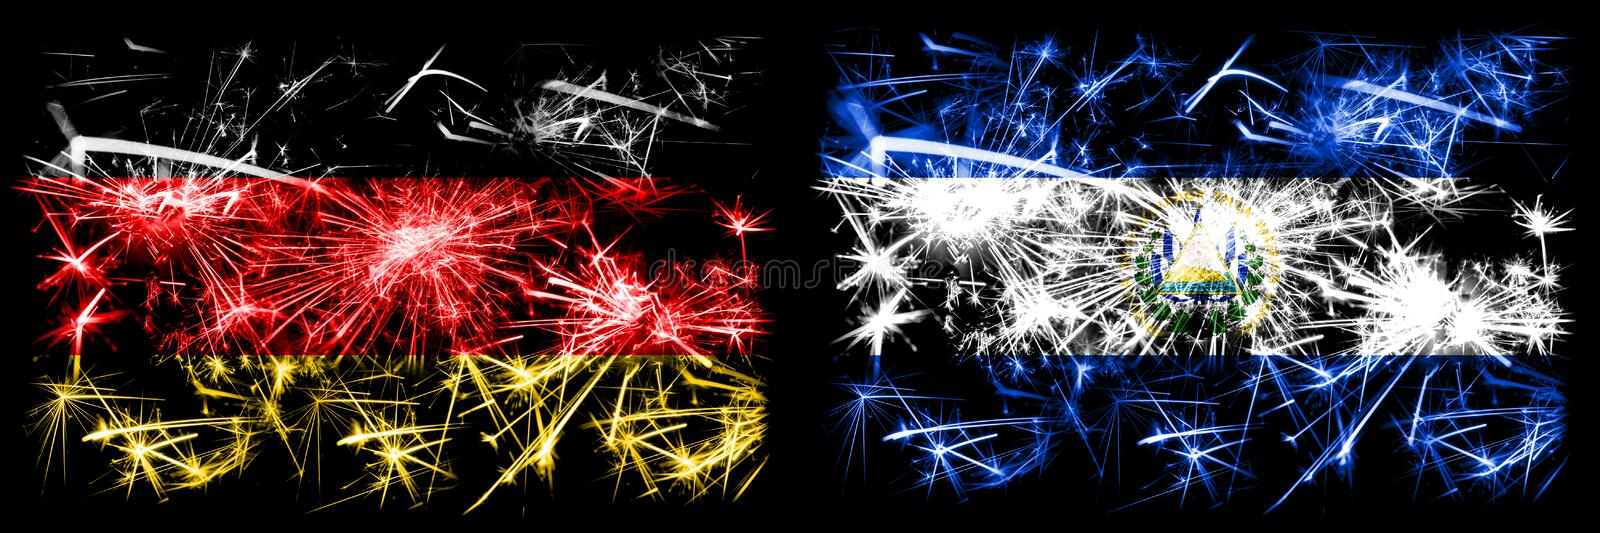 Germany, German vs El Salvador, Salvadorian New Year celebration travel sparkling fireworks flags concept background. Combination. Of two abstract states flags vector illustration